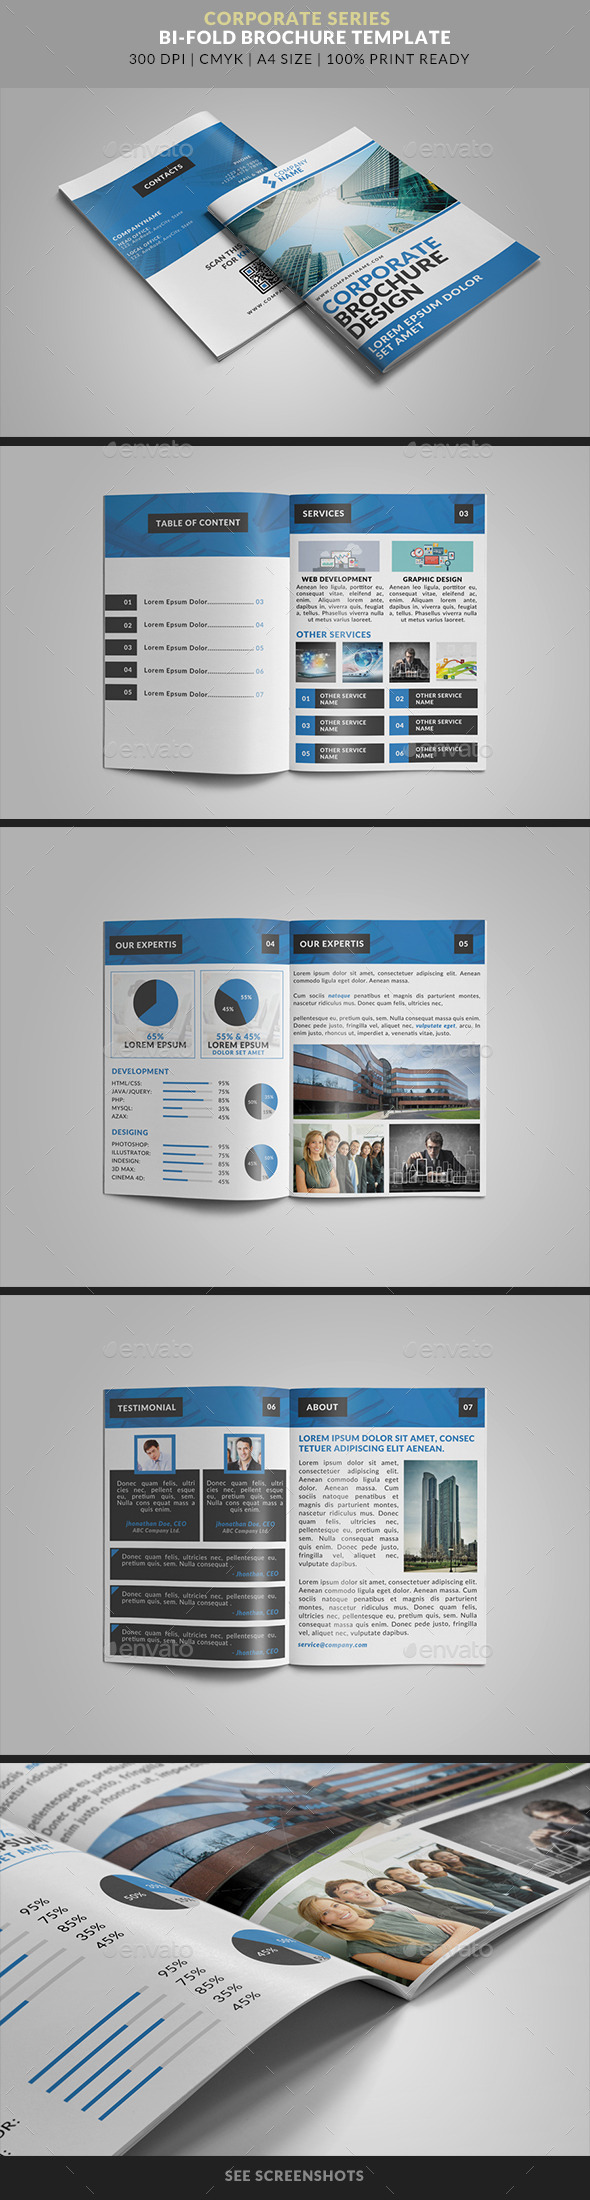 GraphicRiver 8 Page Bifold Brochure Corporate Series 01 9648074